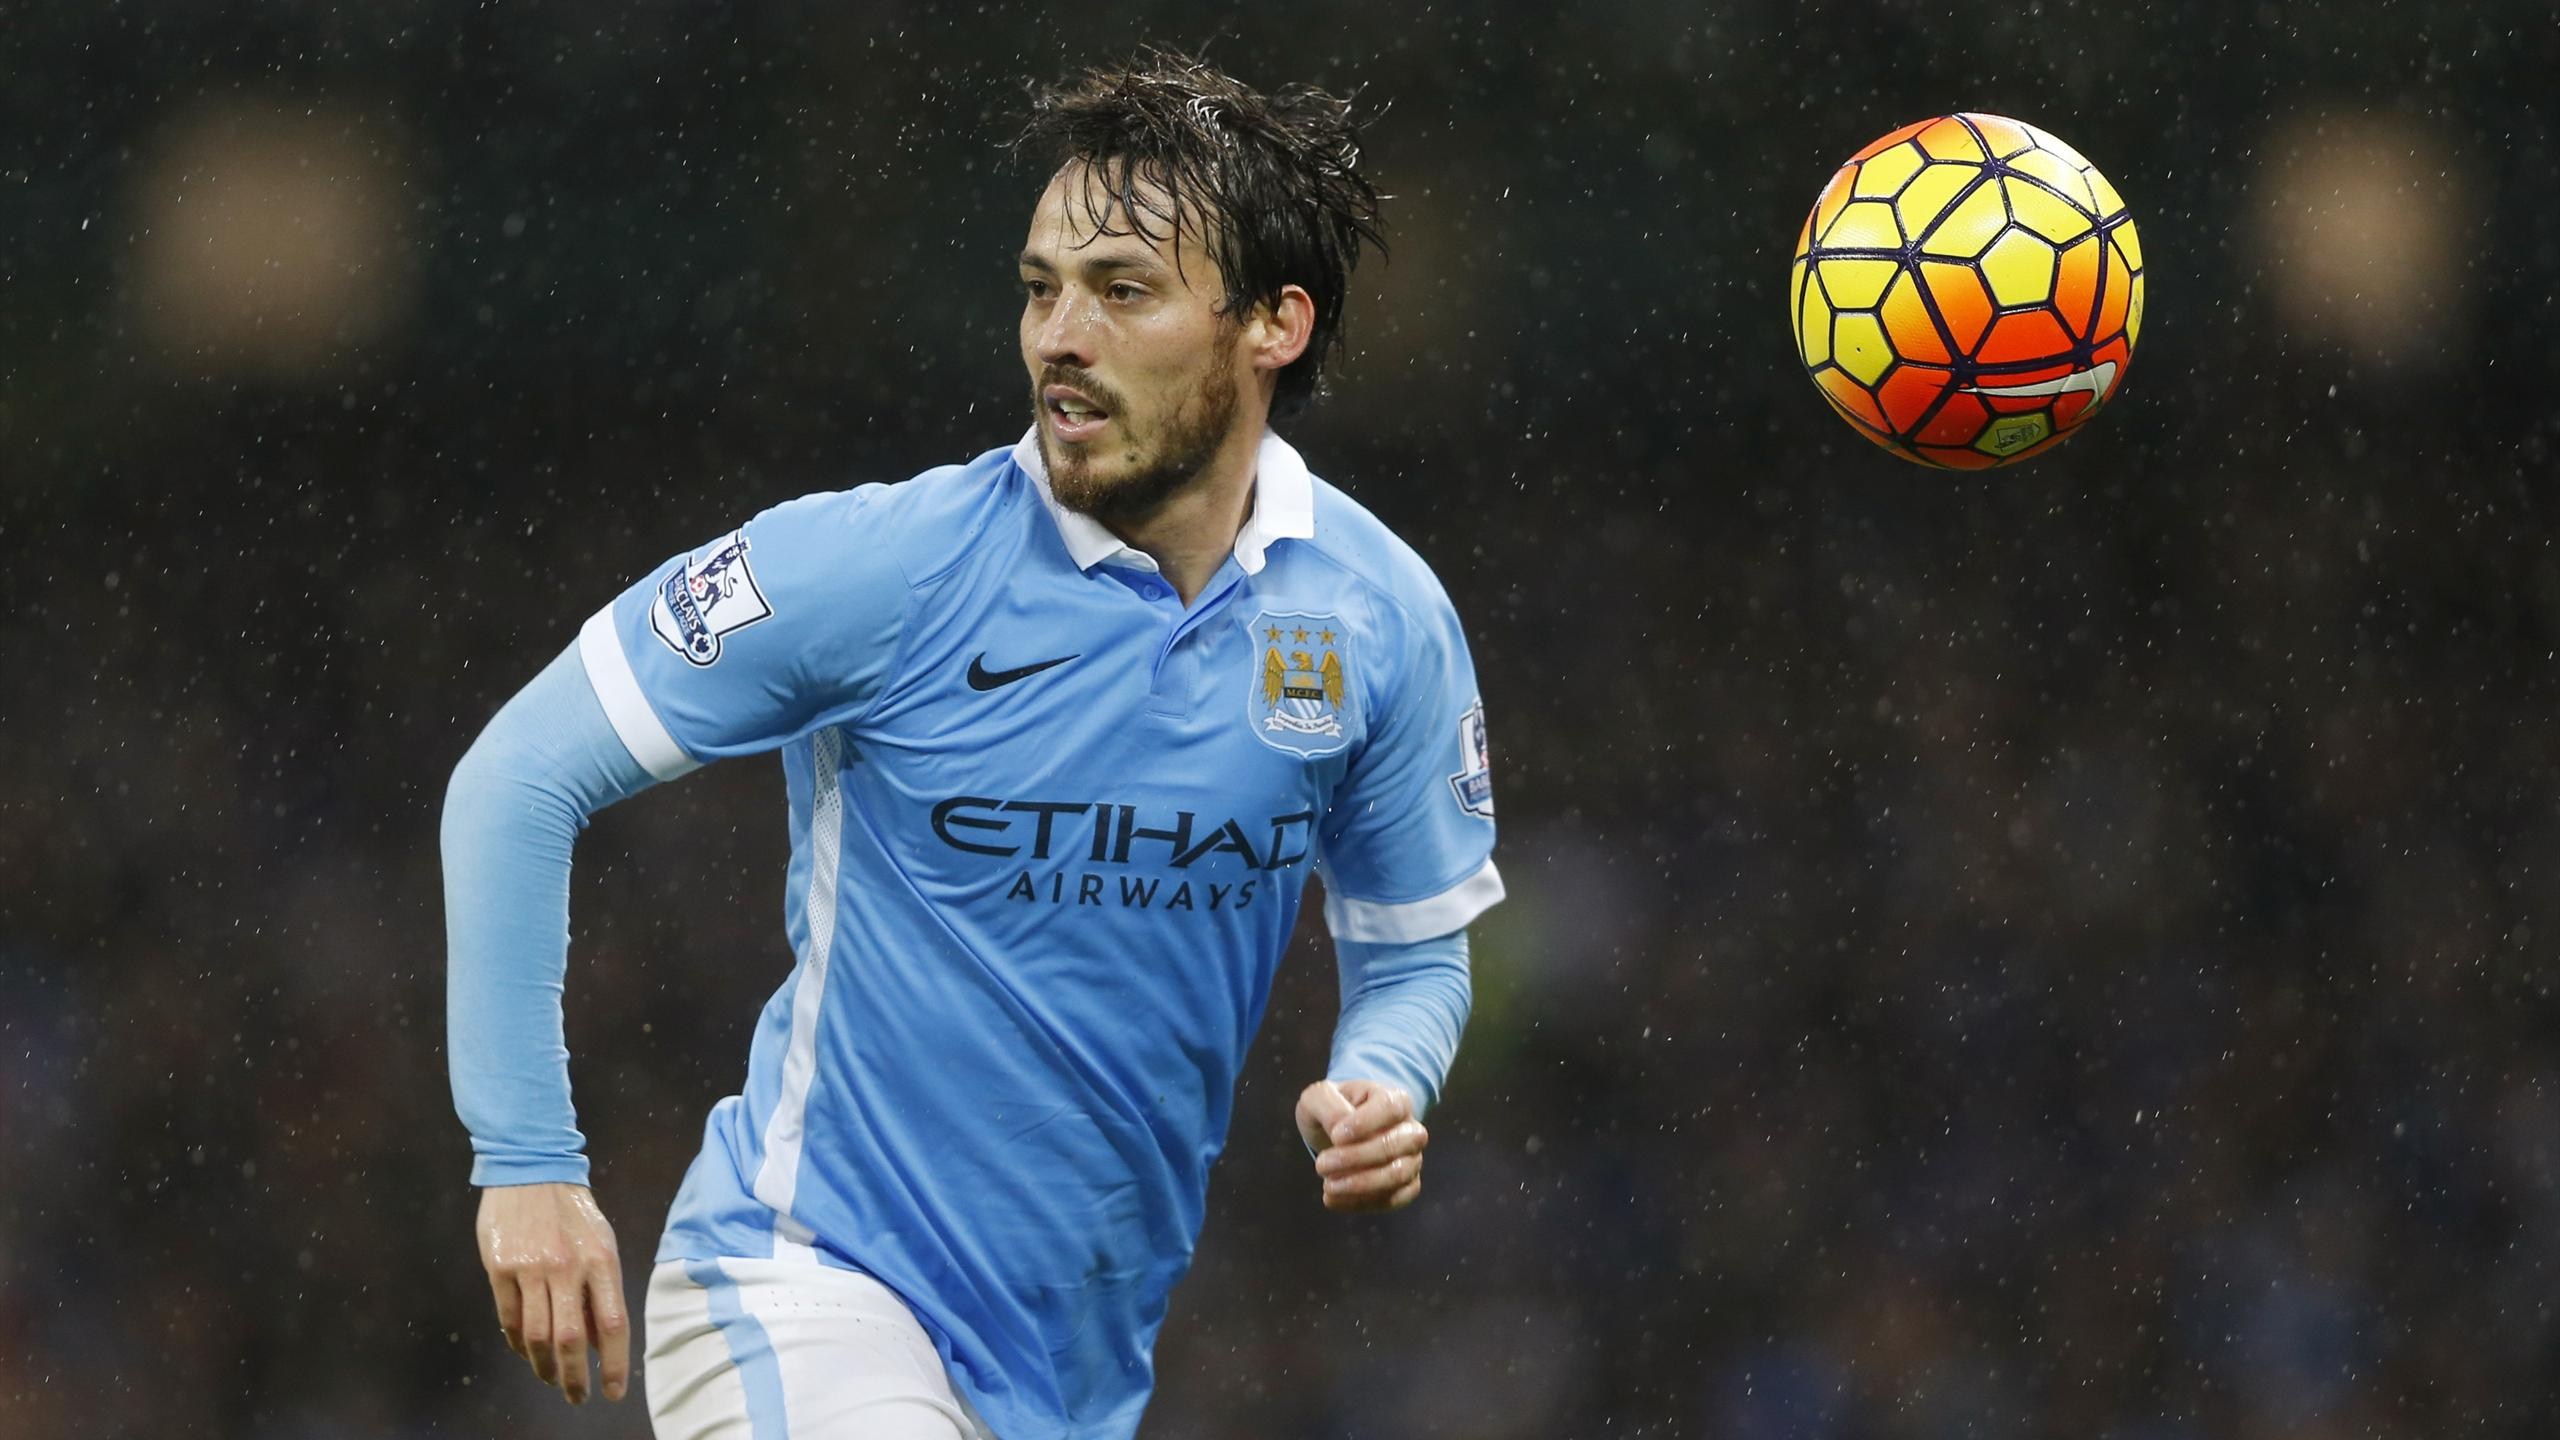 Manchester City David Silva in action against Swansea City